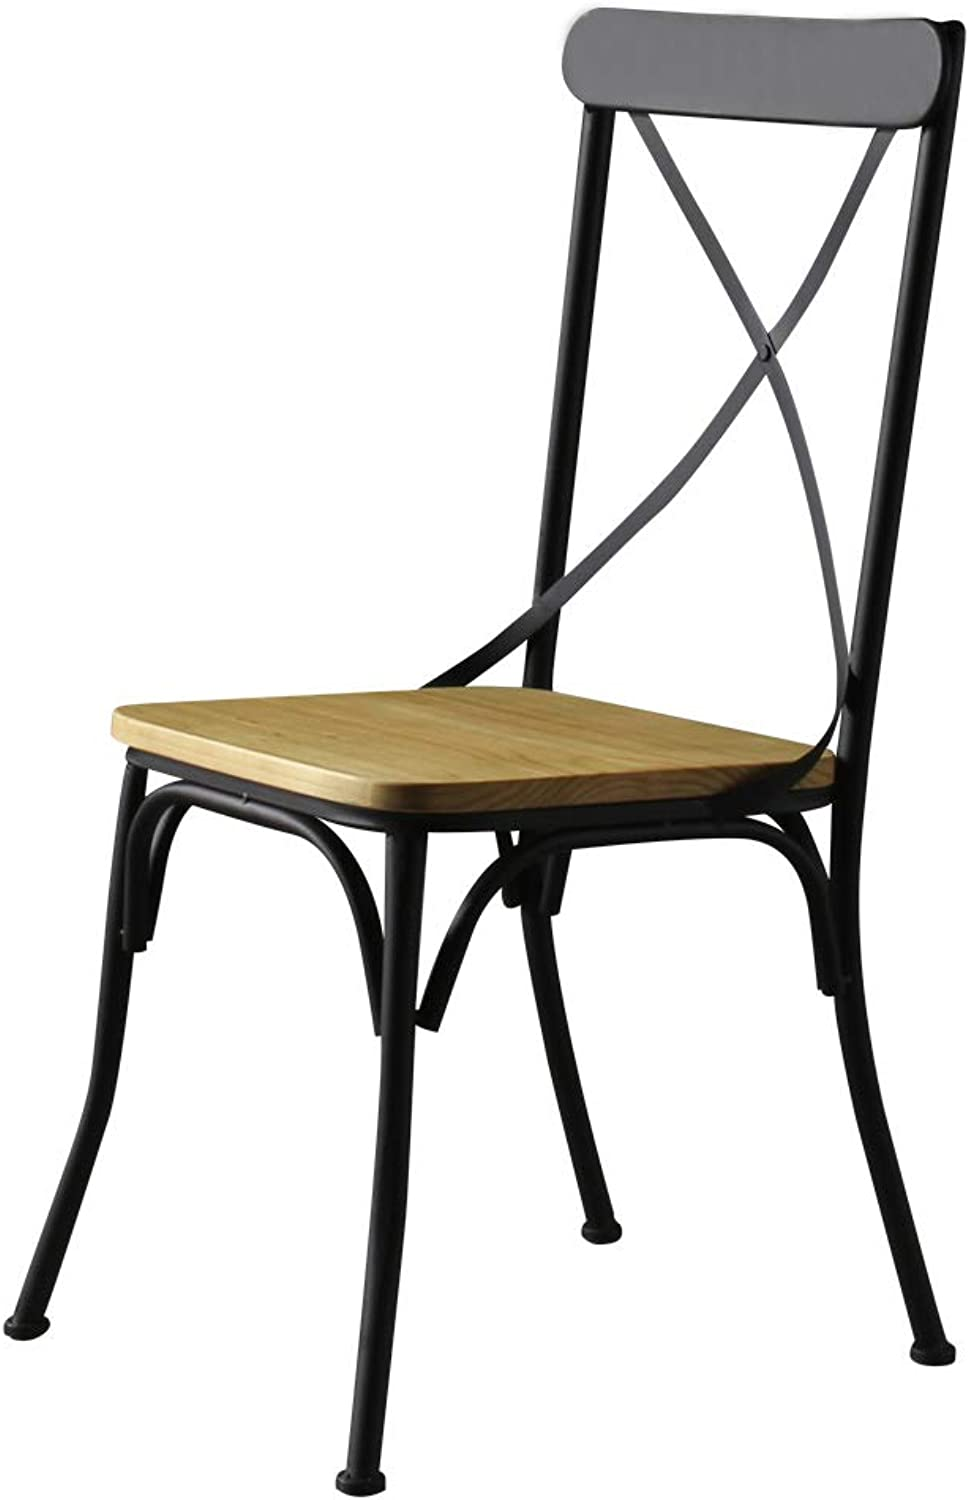 LRZS-Furniture Nordic Restoration Iron Art Dining Chair Personality Solid Wood American Cafe Simple Modern Household Leisure Backrest Chair (color   Black)